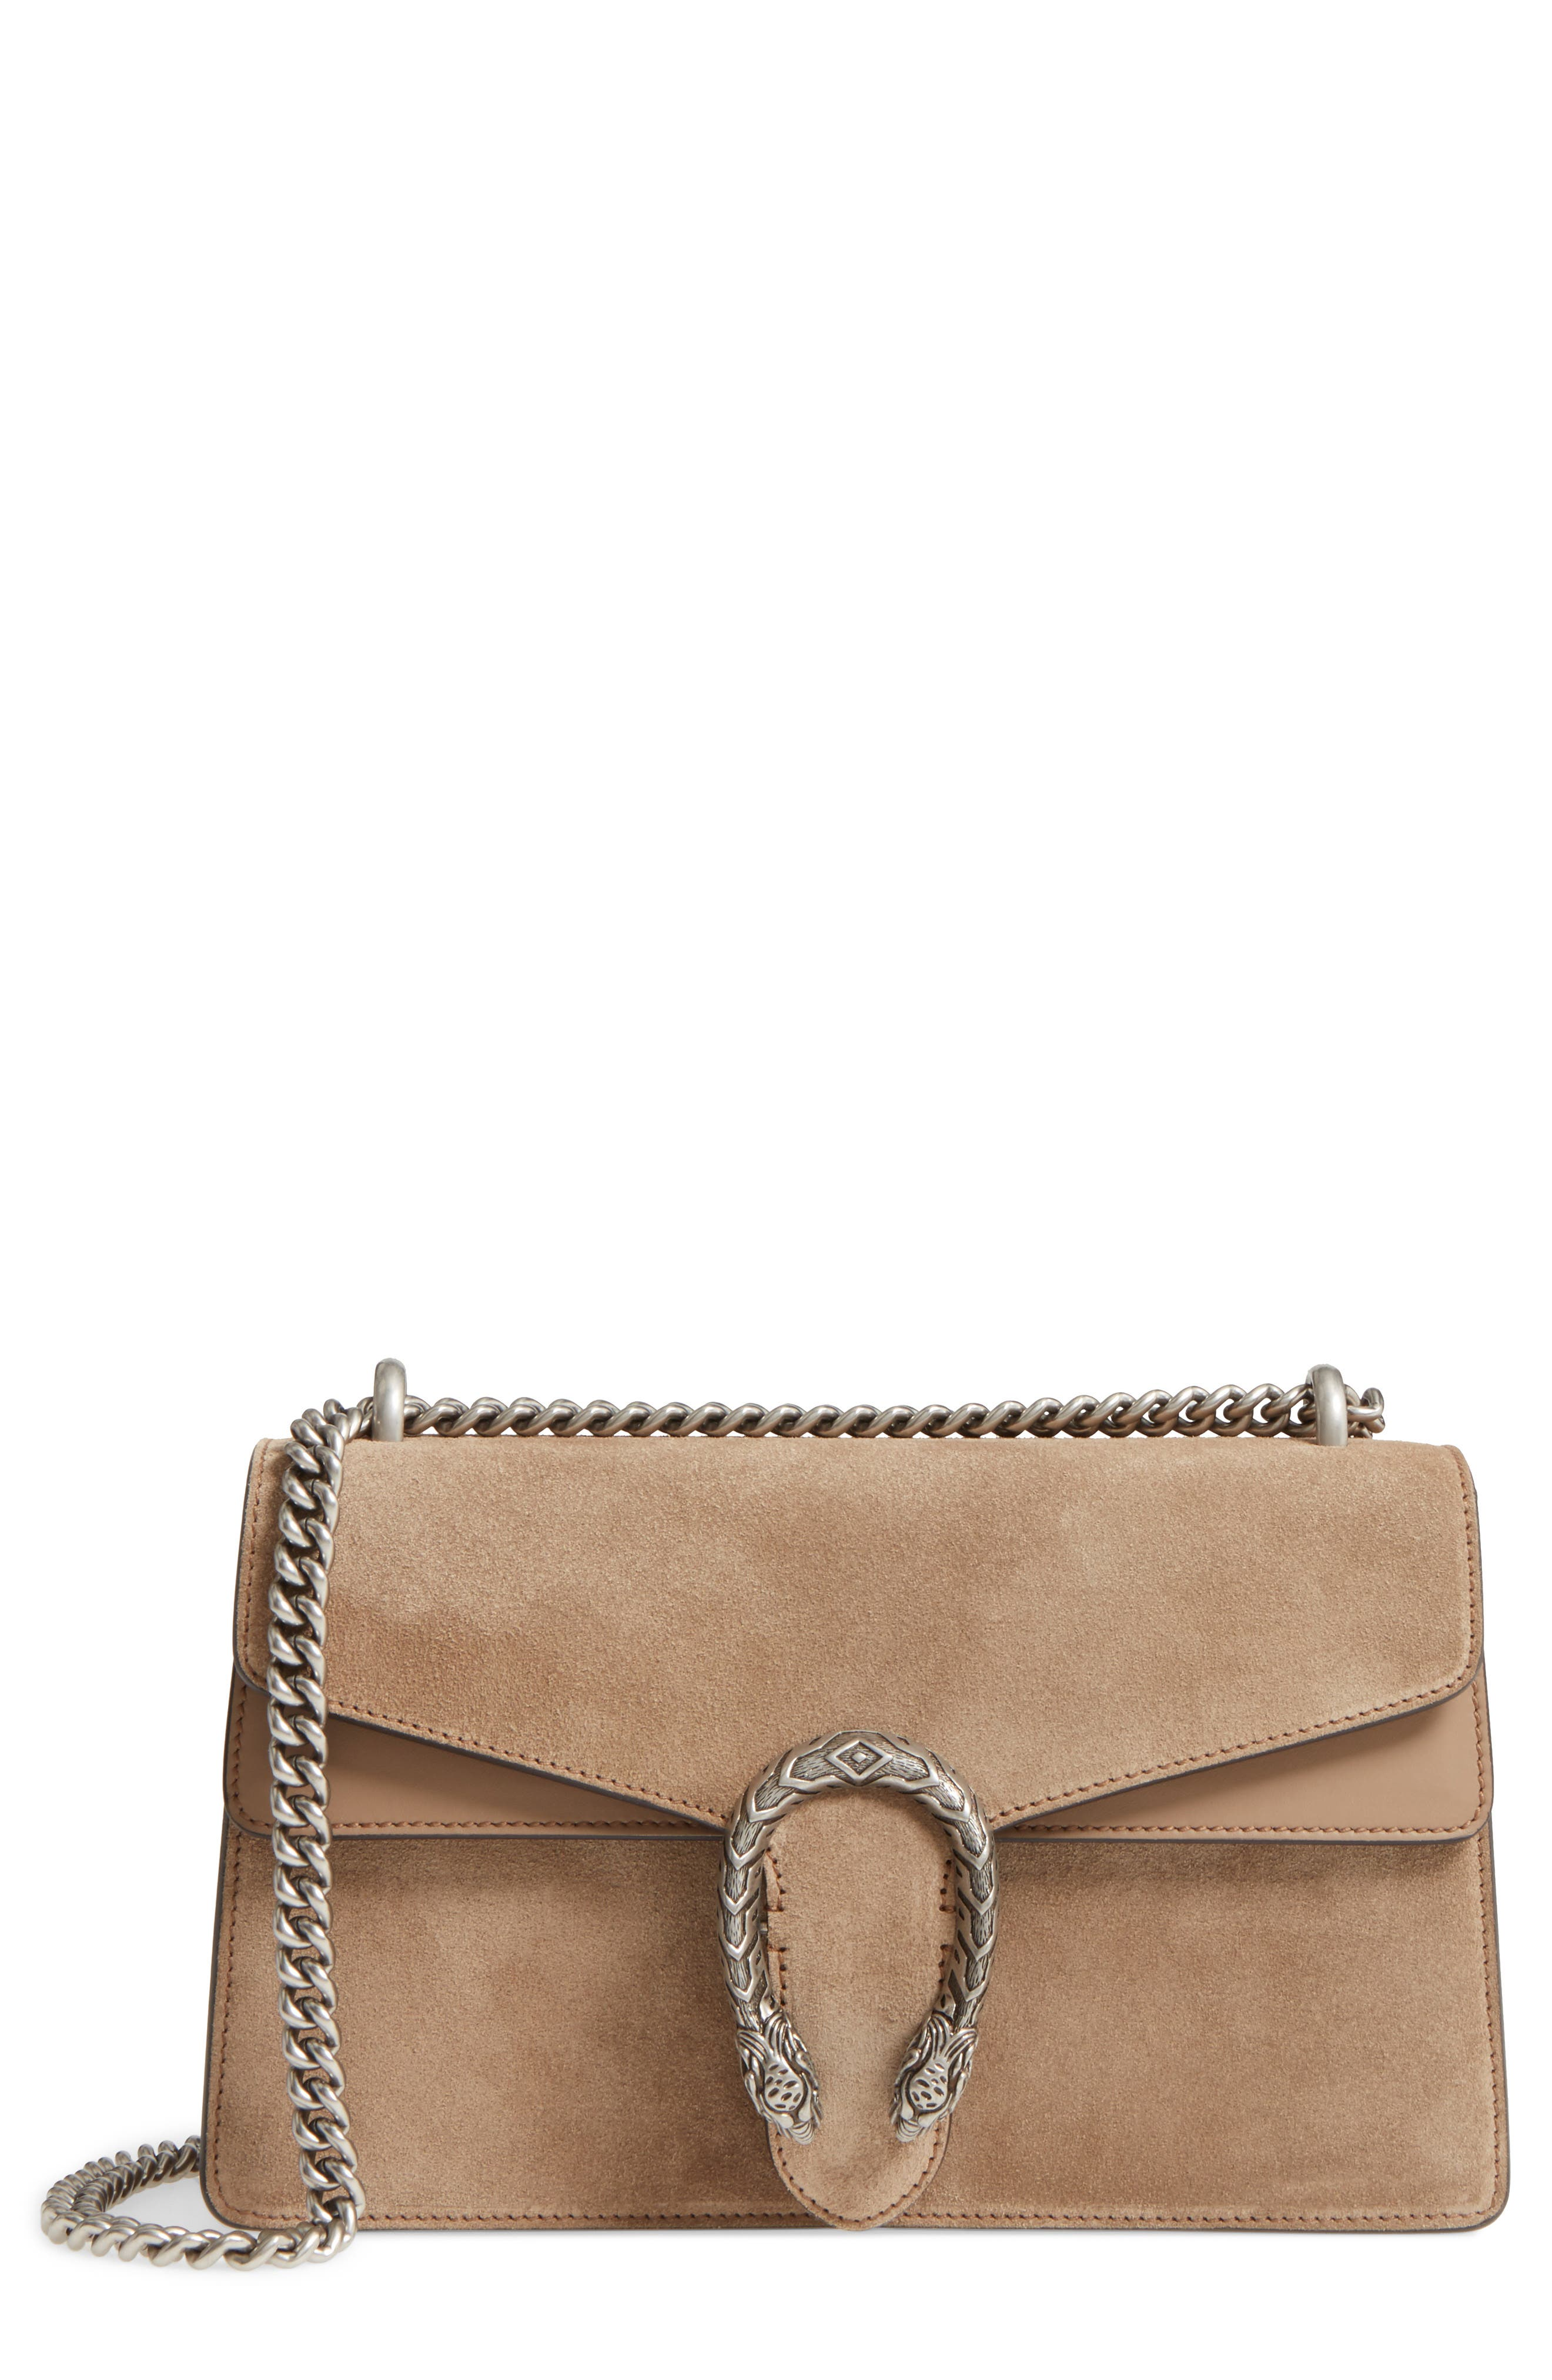 Small Dionysus Suede Shoulder Bag,                             Main thumbnail 1, color,                             Taupe